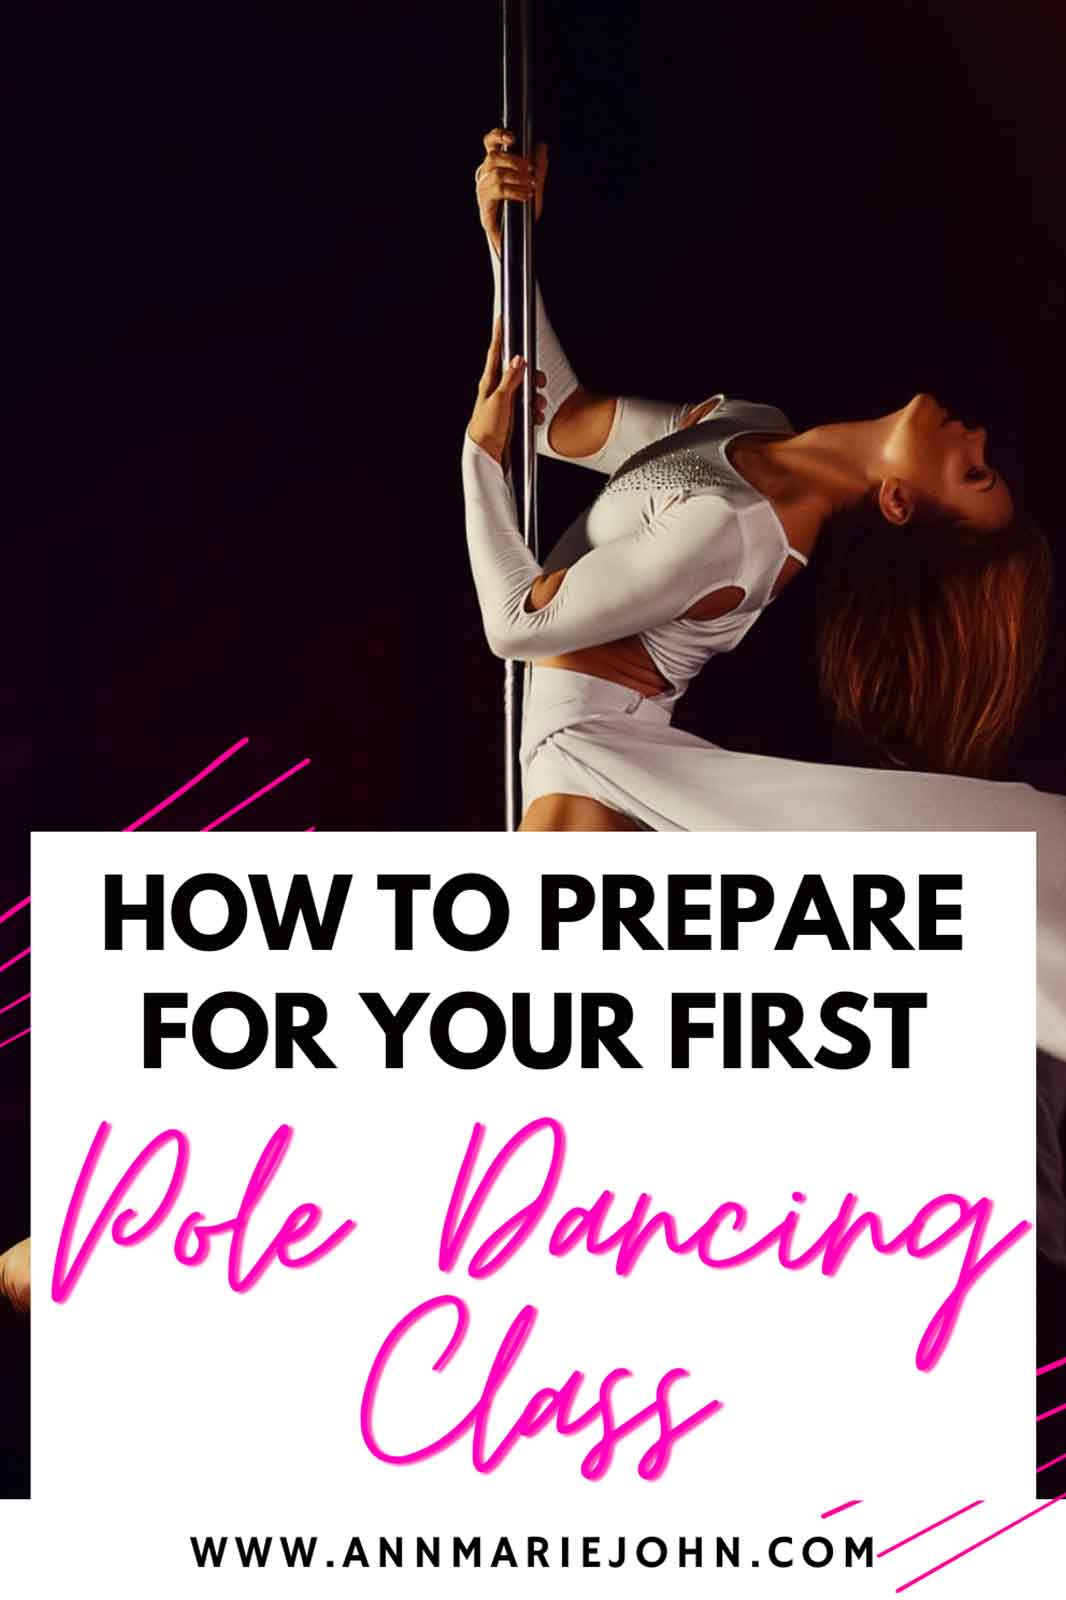 How to Prepare for Your First Pole Dancing Class